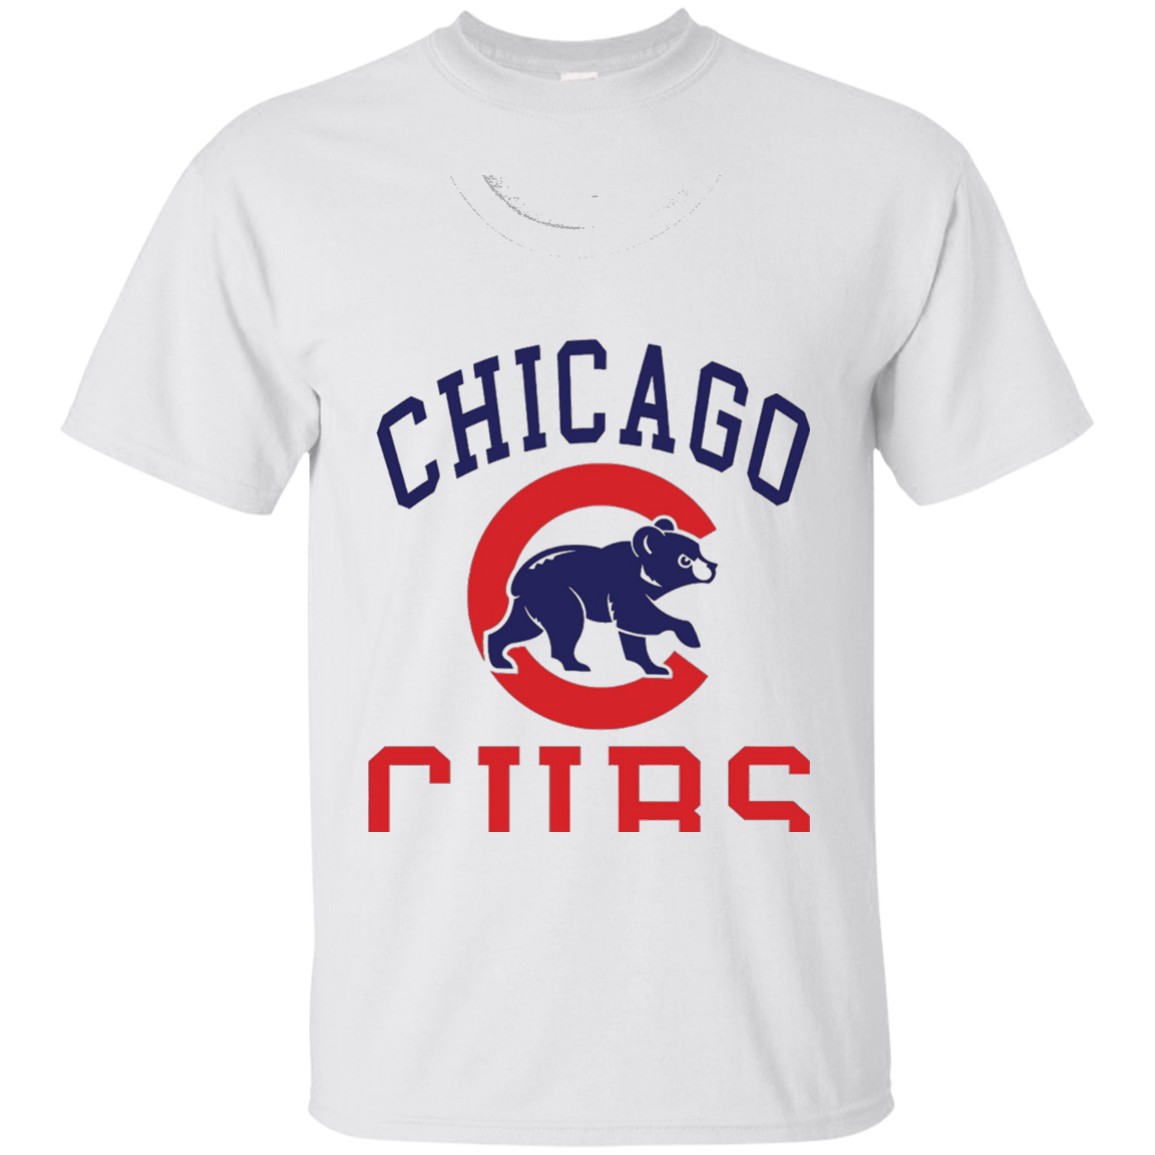 Cubs Baseball Team Chi-ca-go Allsex T Shirt